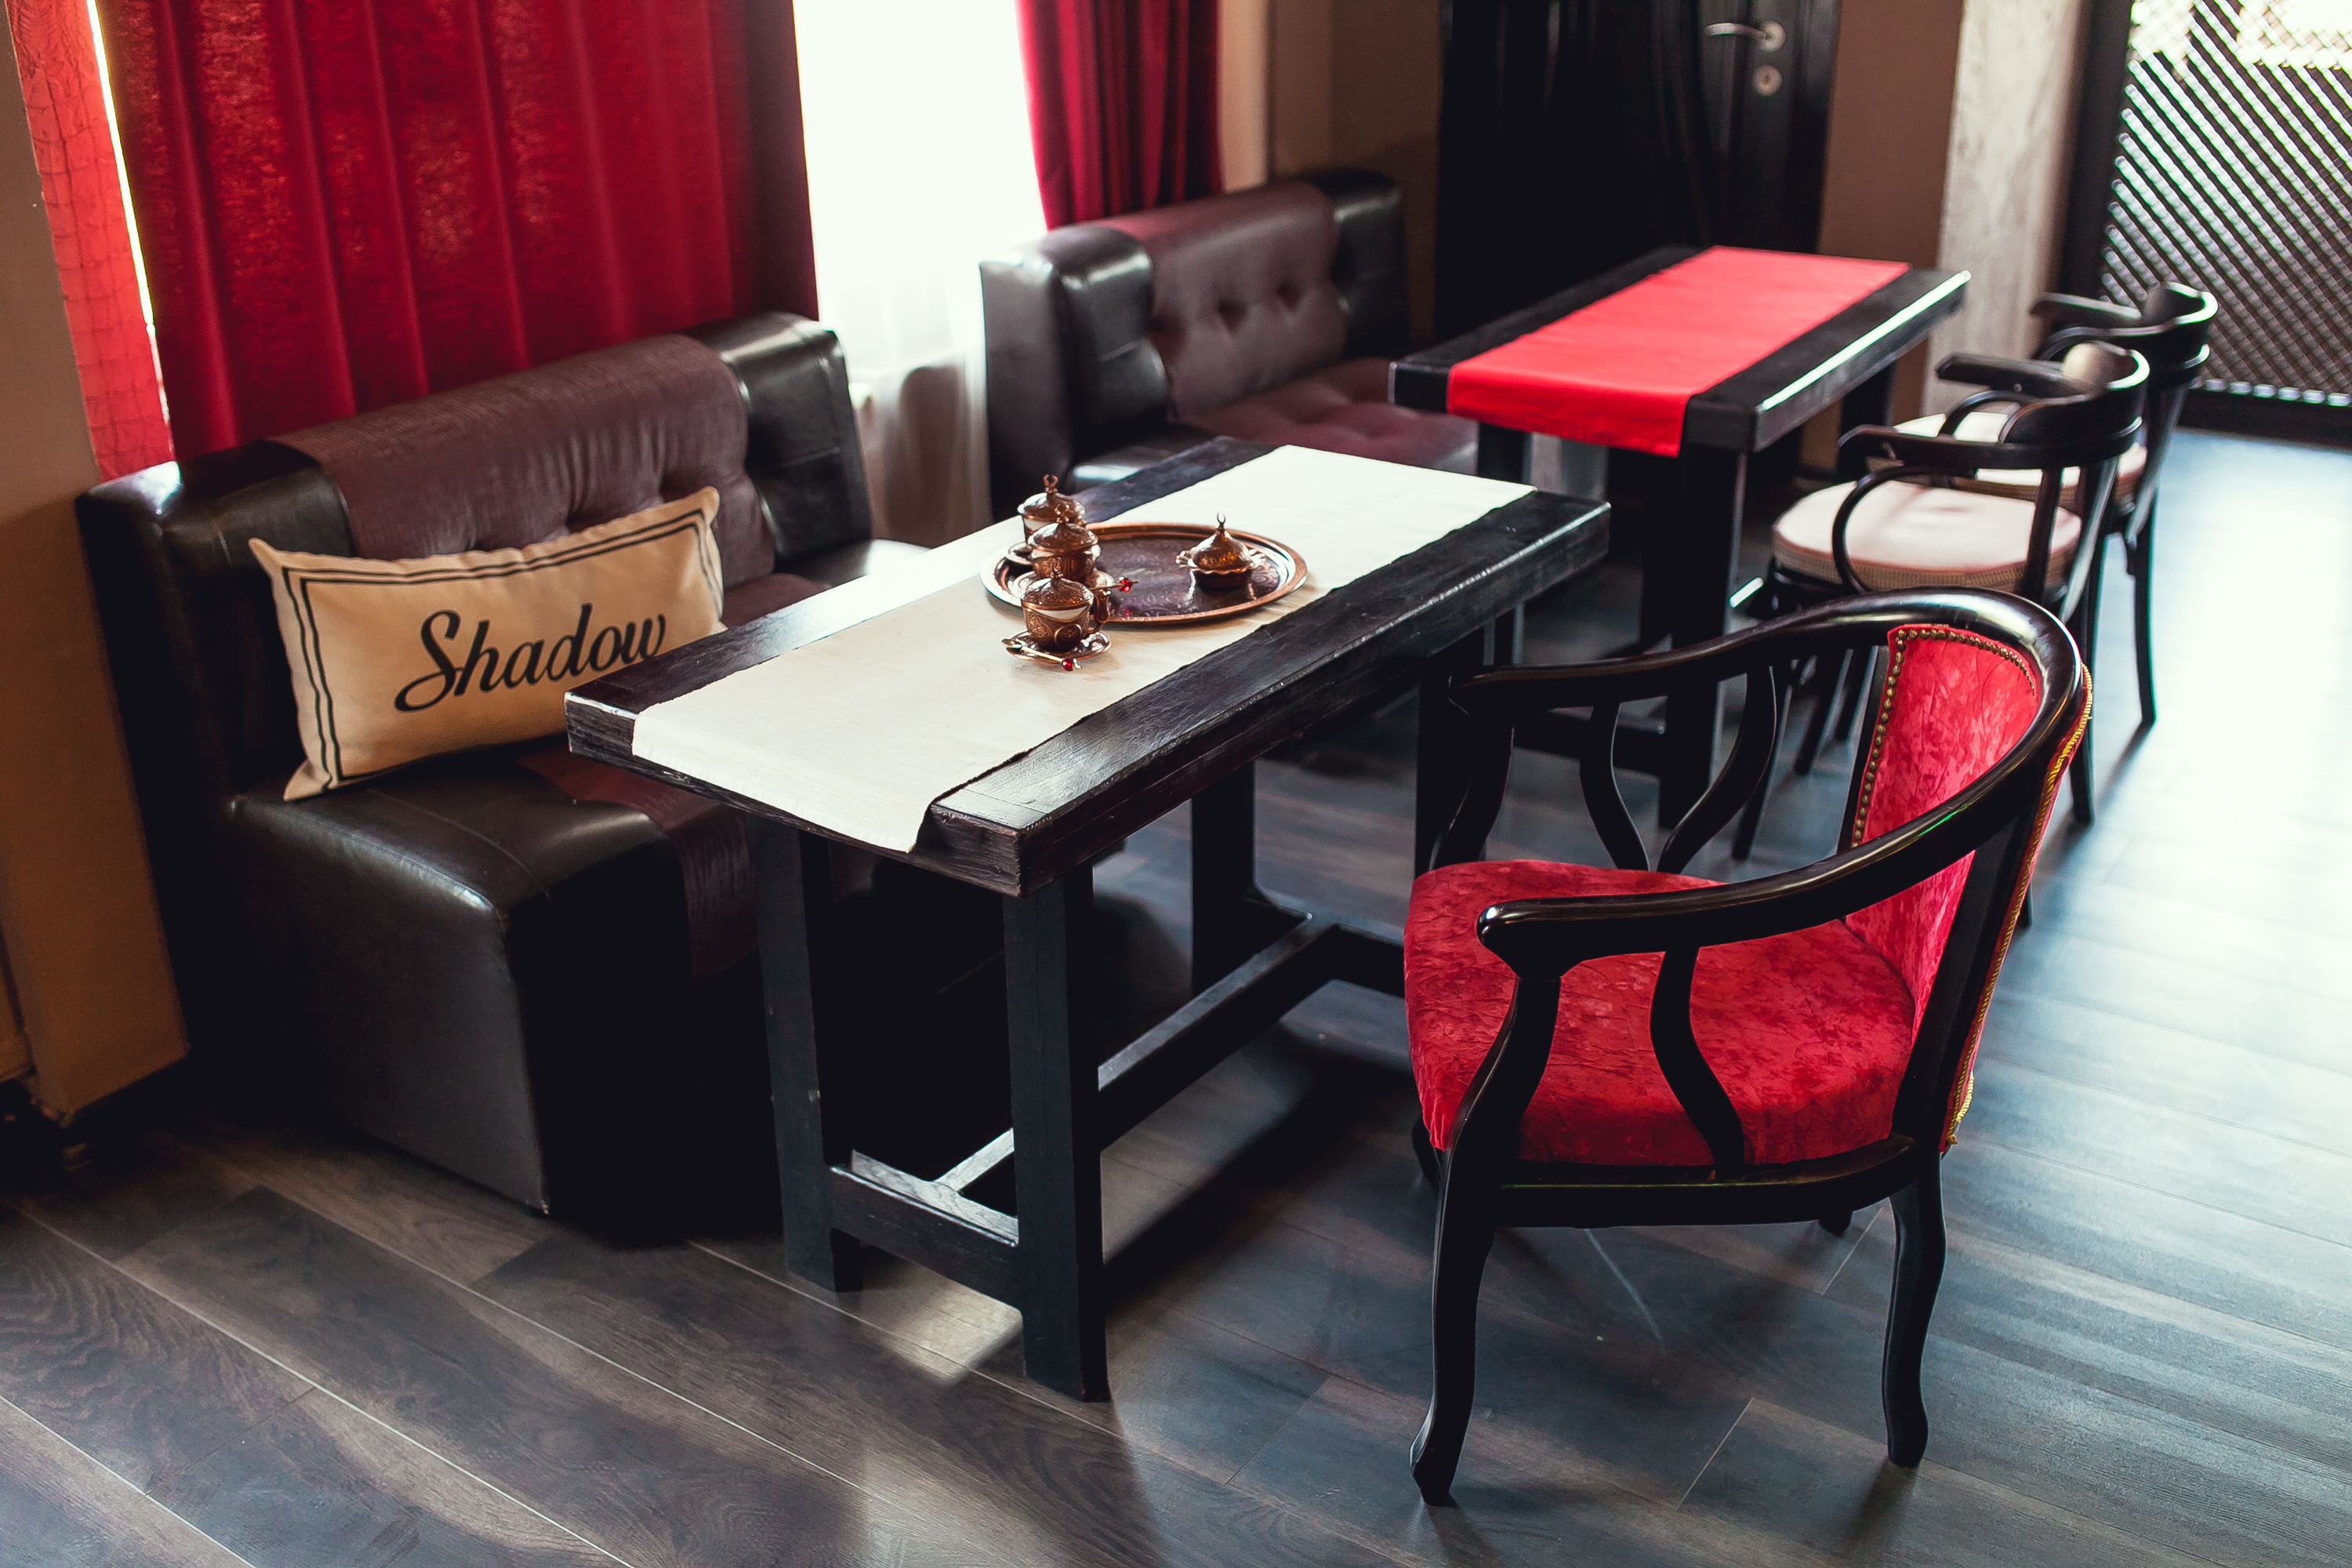 Shadow Boutique Hotel en Chisinau